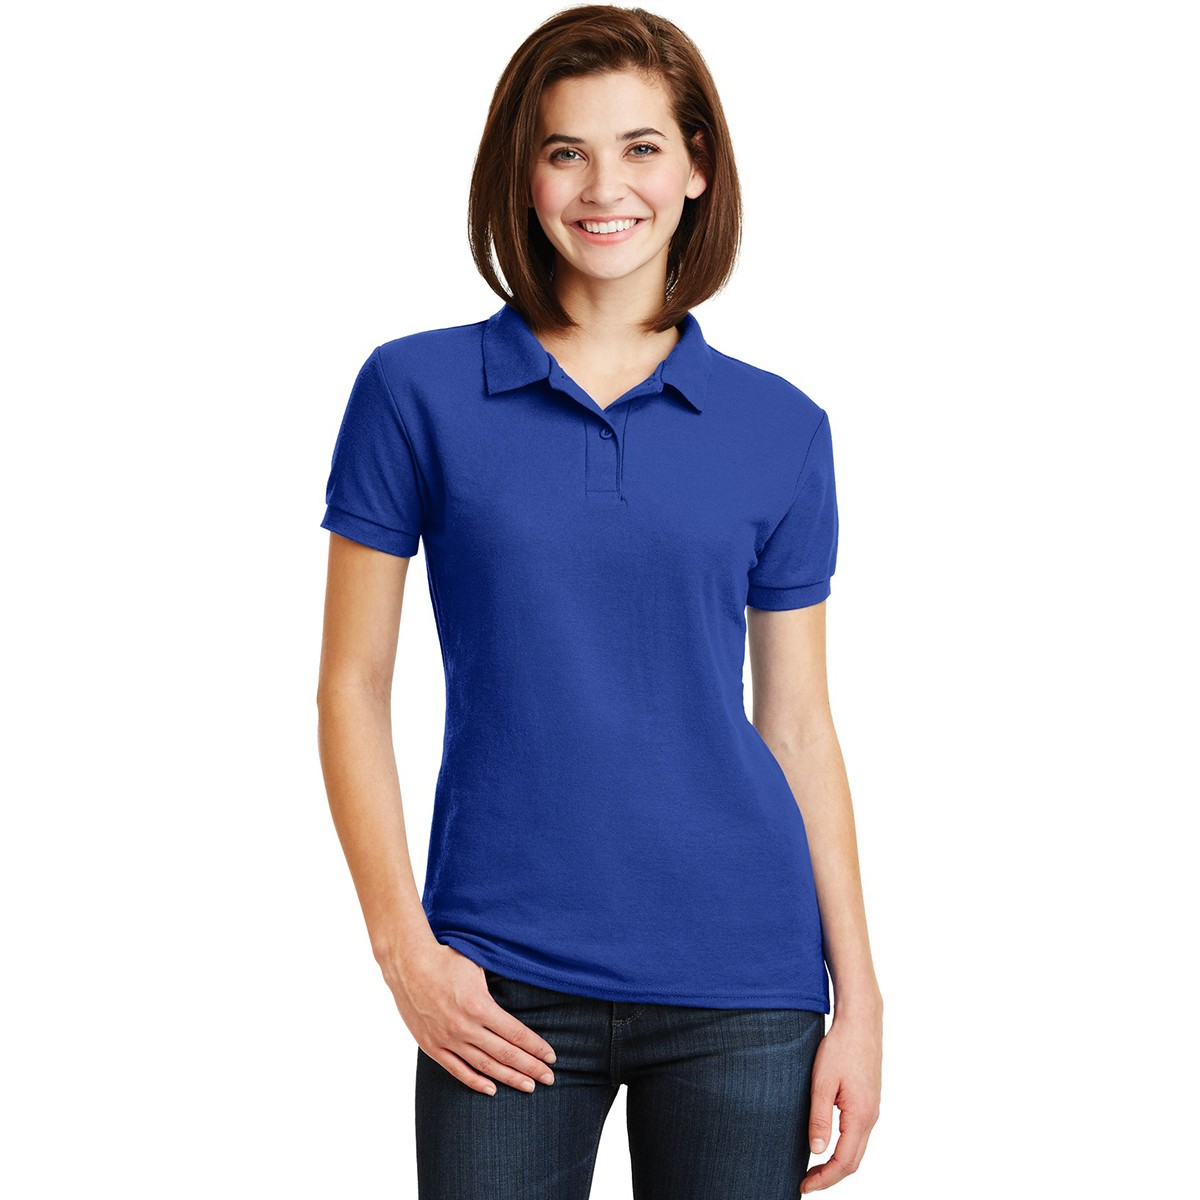 Gildan 72800l ladies dryblend double pique sport shirt for Gildan brand t shirt size chart